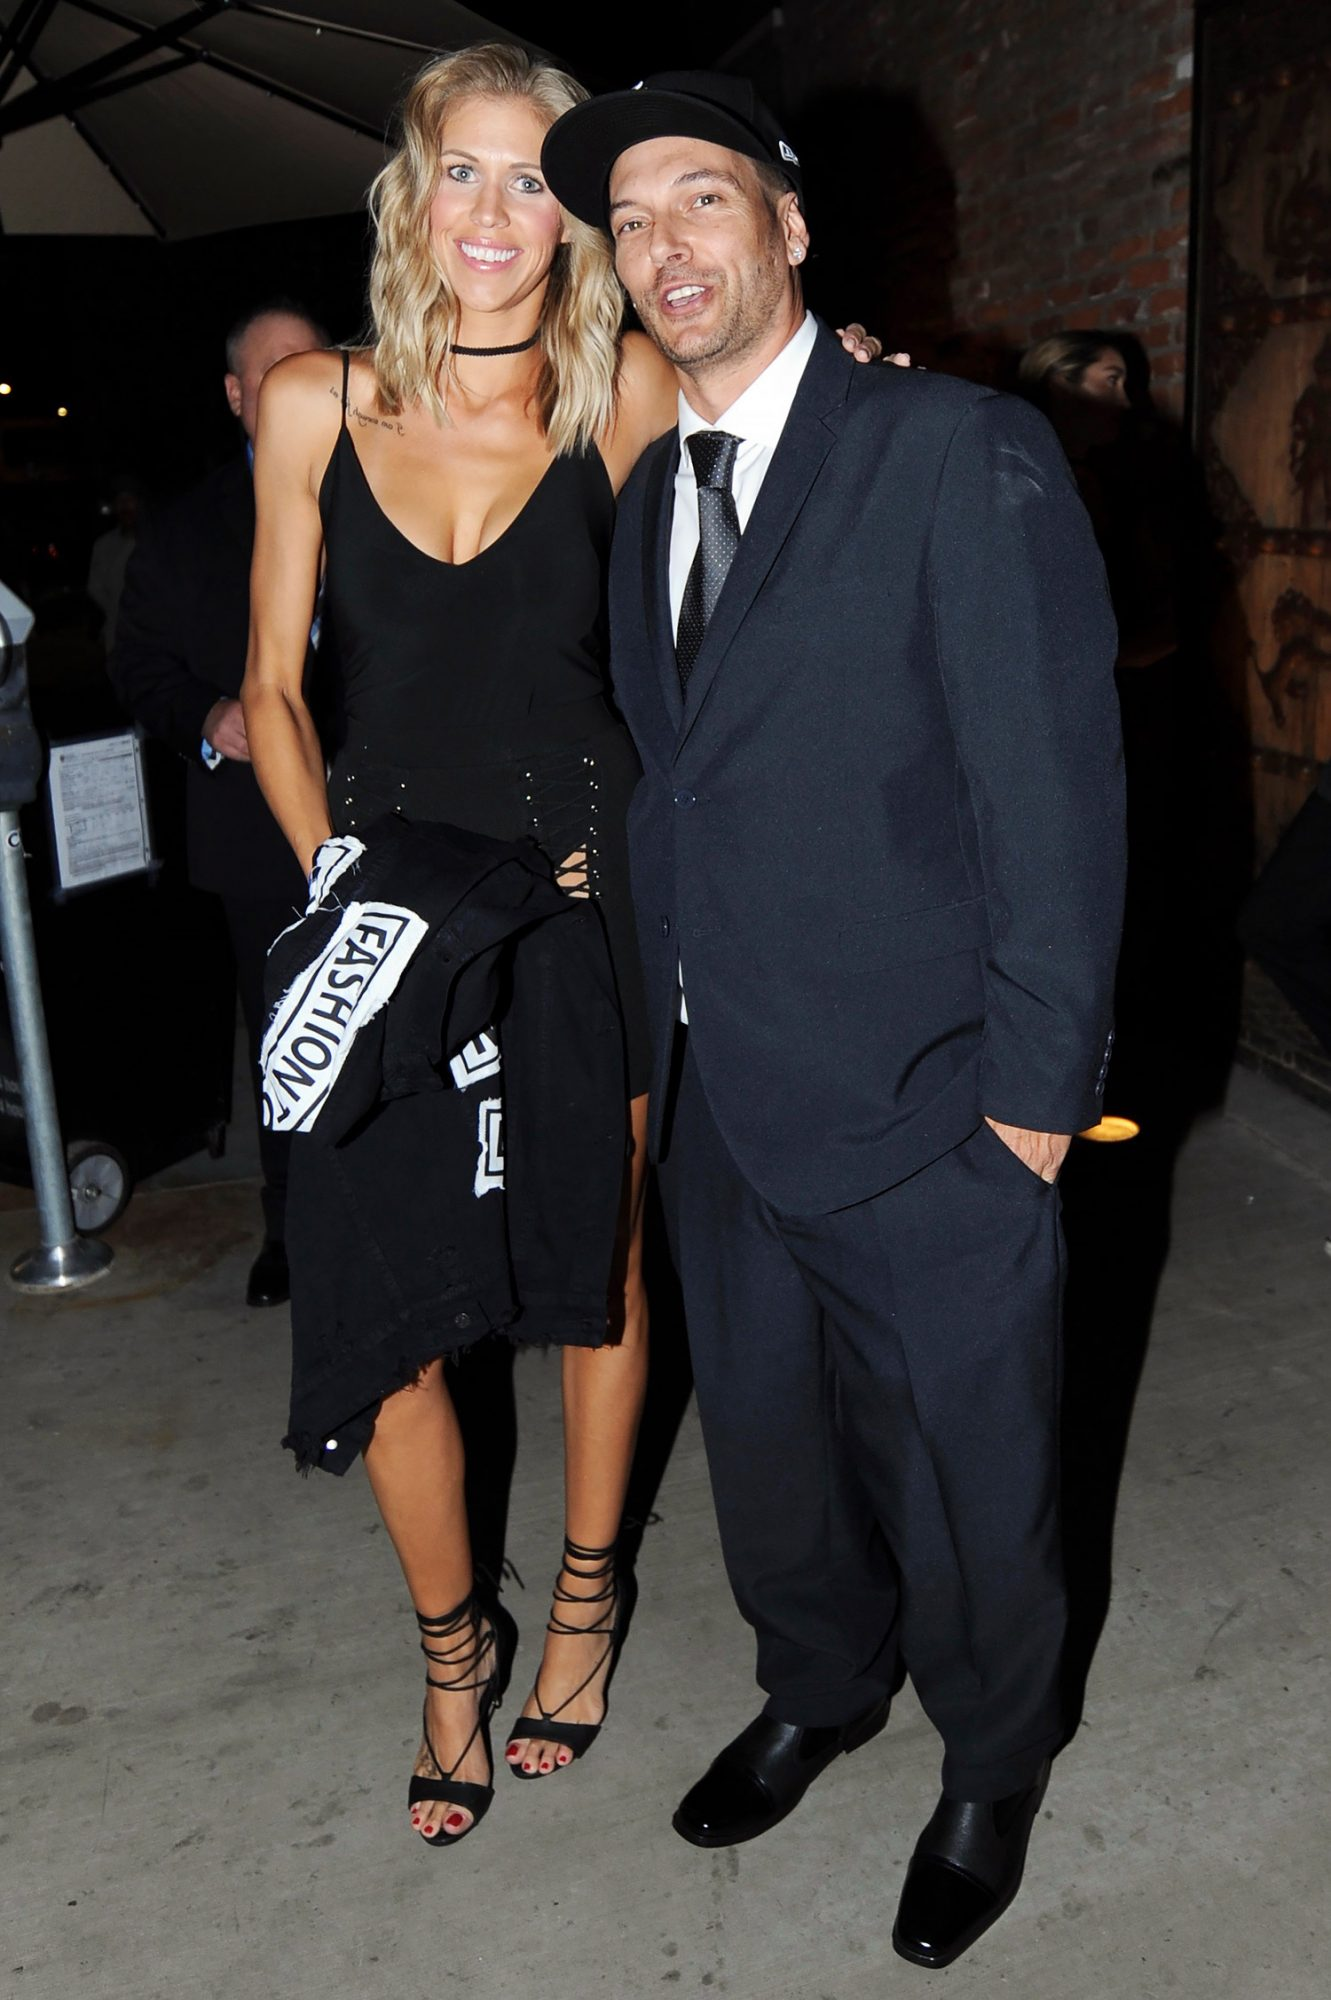 Kevin Federline and his wife Victoria Prince are seen leaving Tao in Hollywood